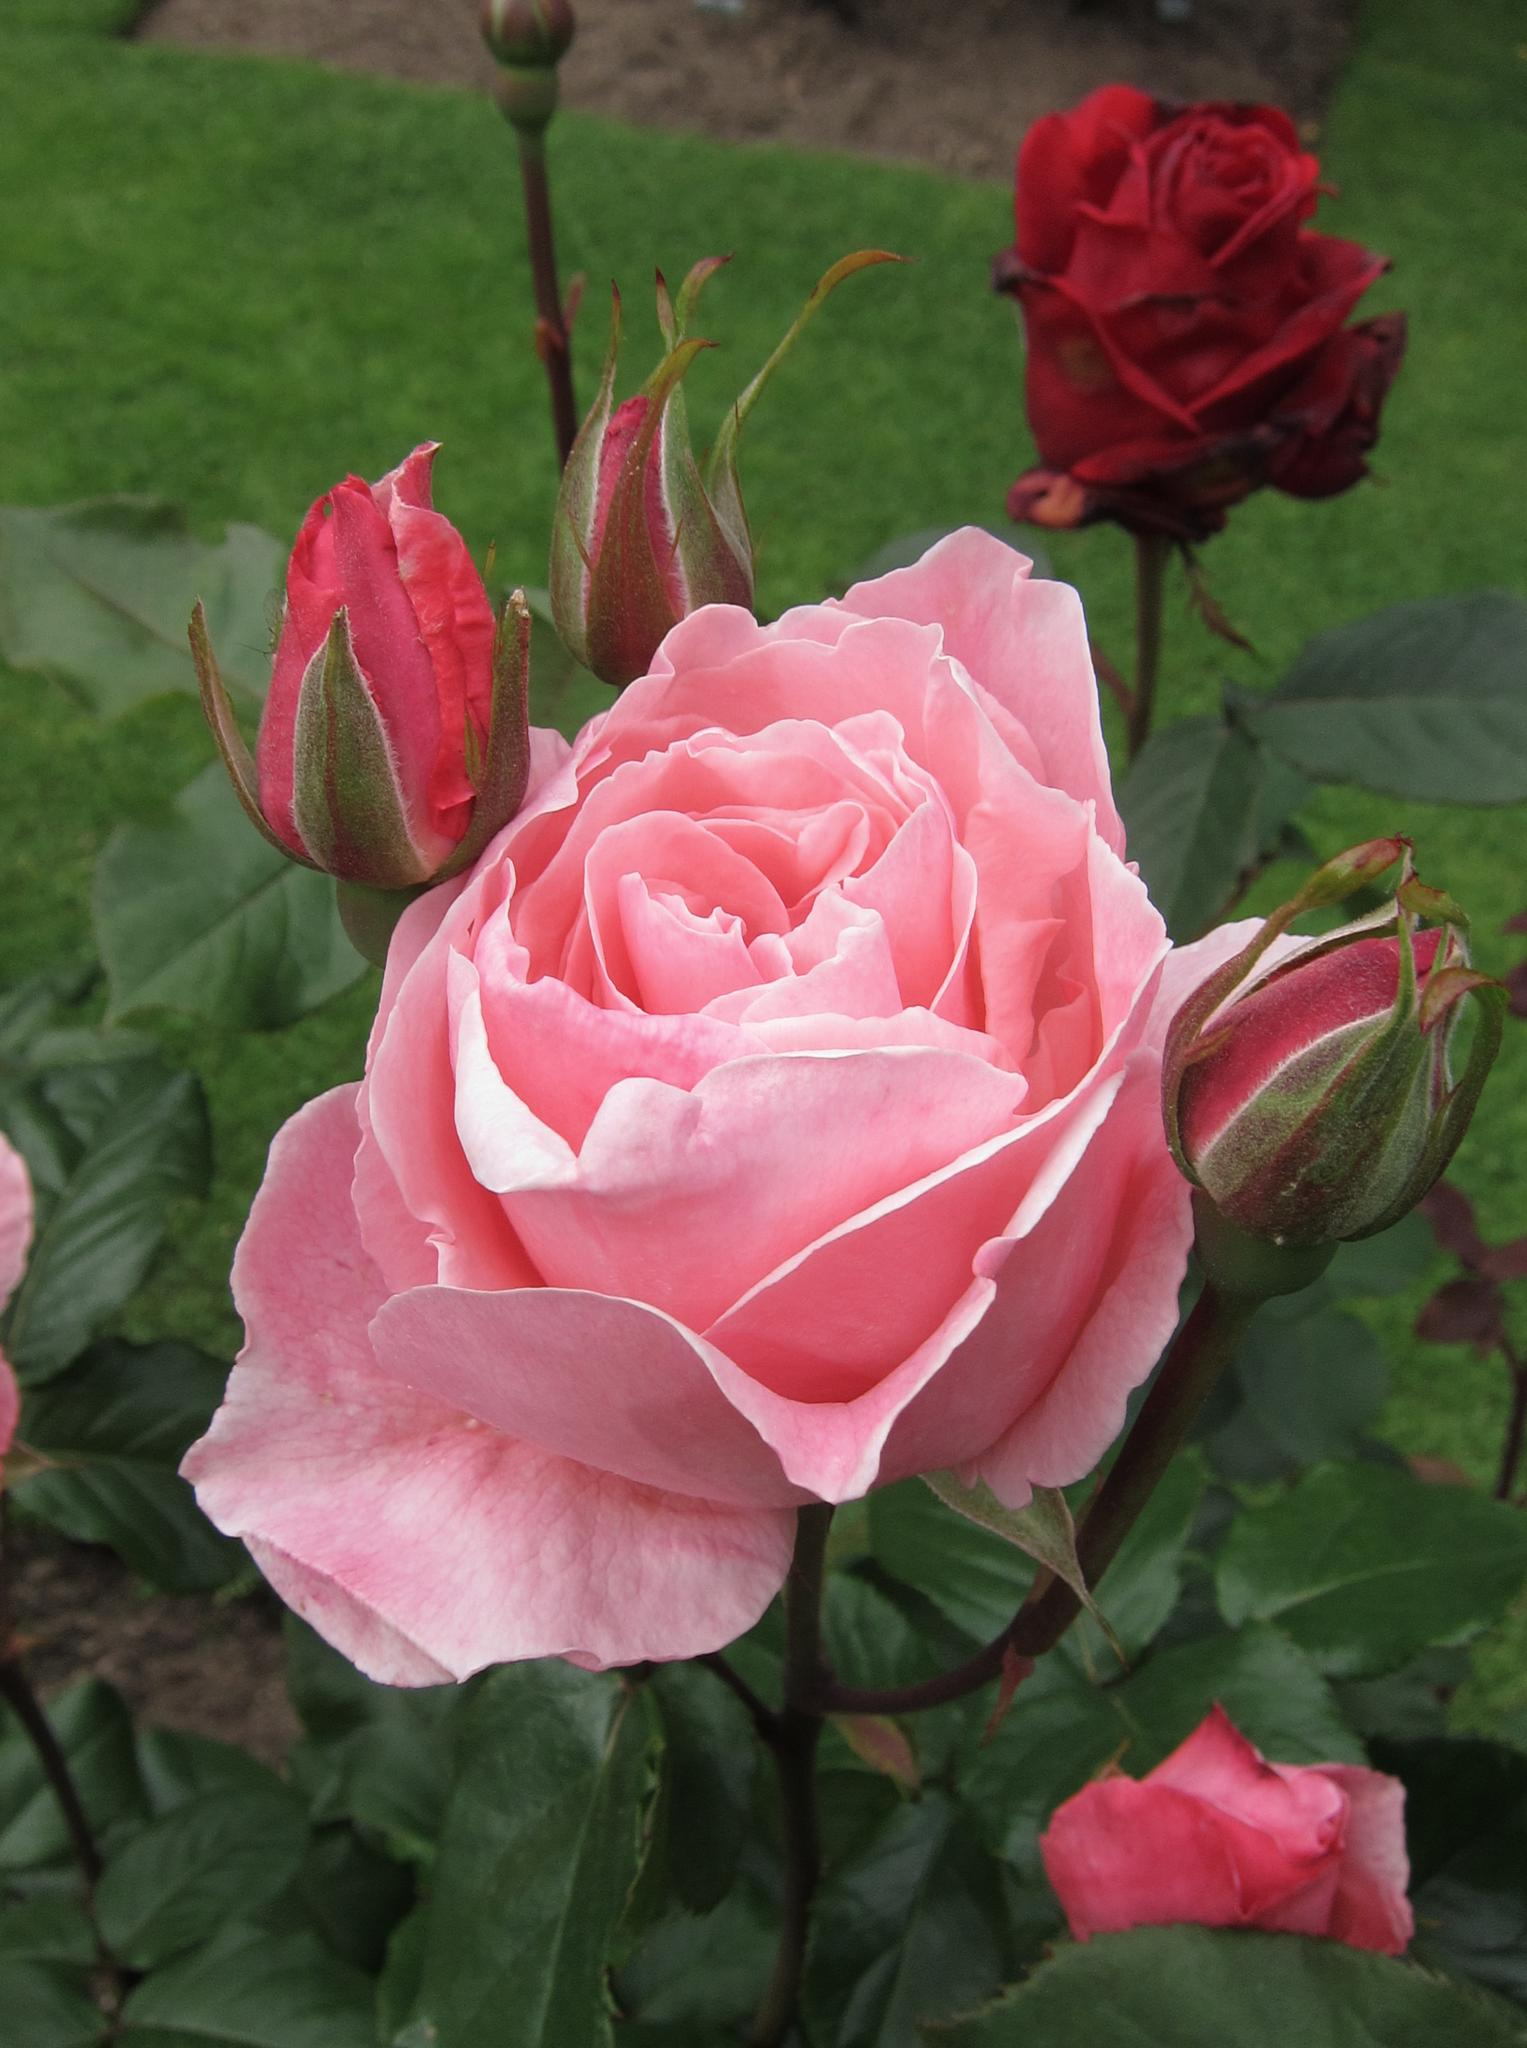 Impeccable Rose by Carolyn Chase